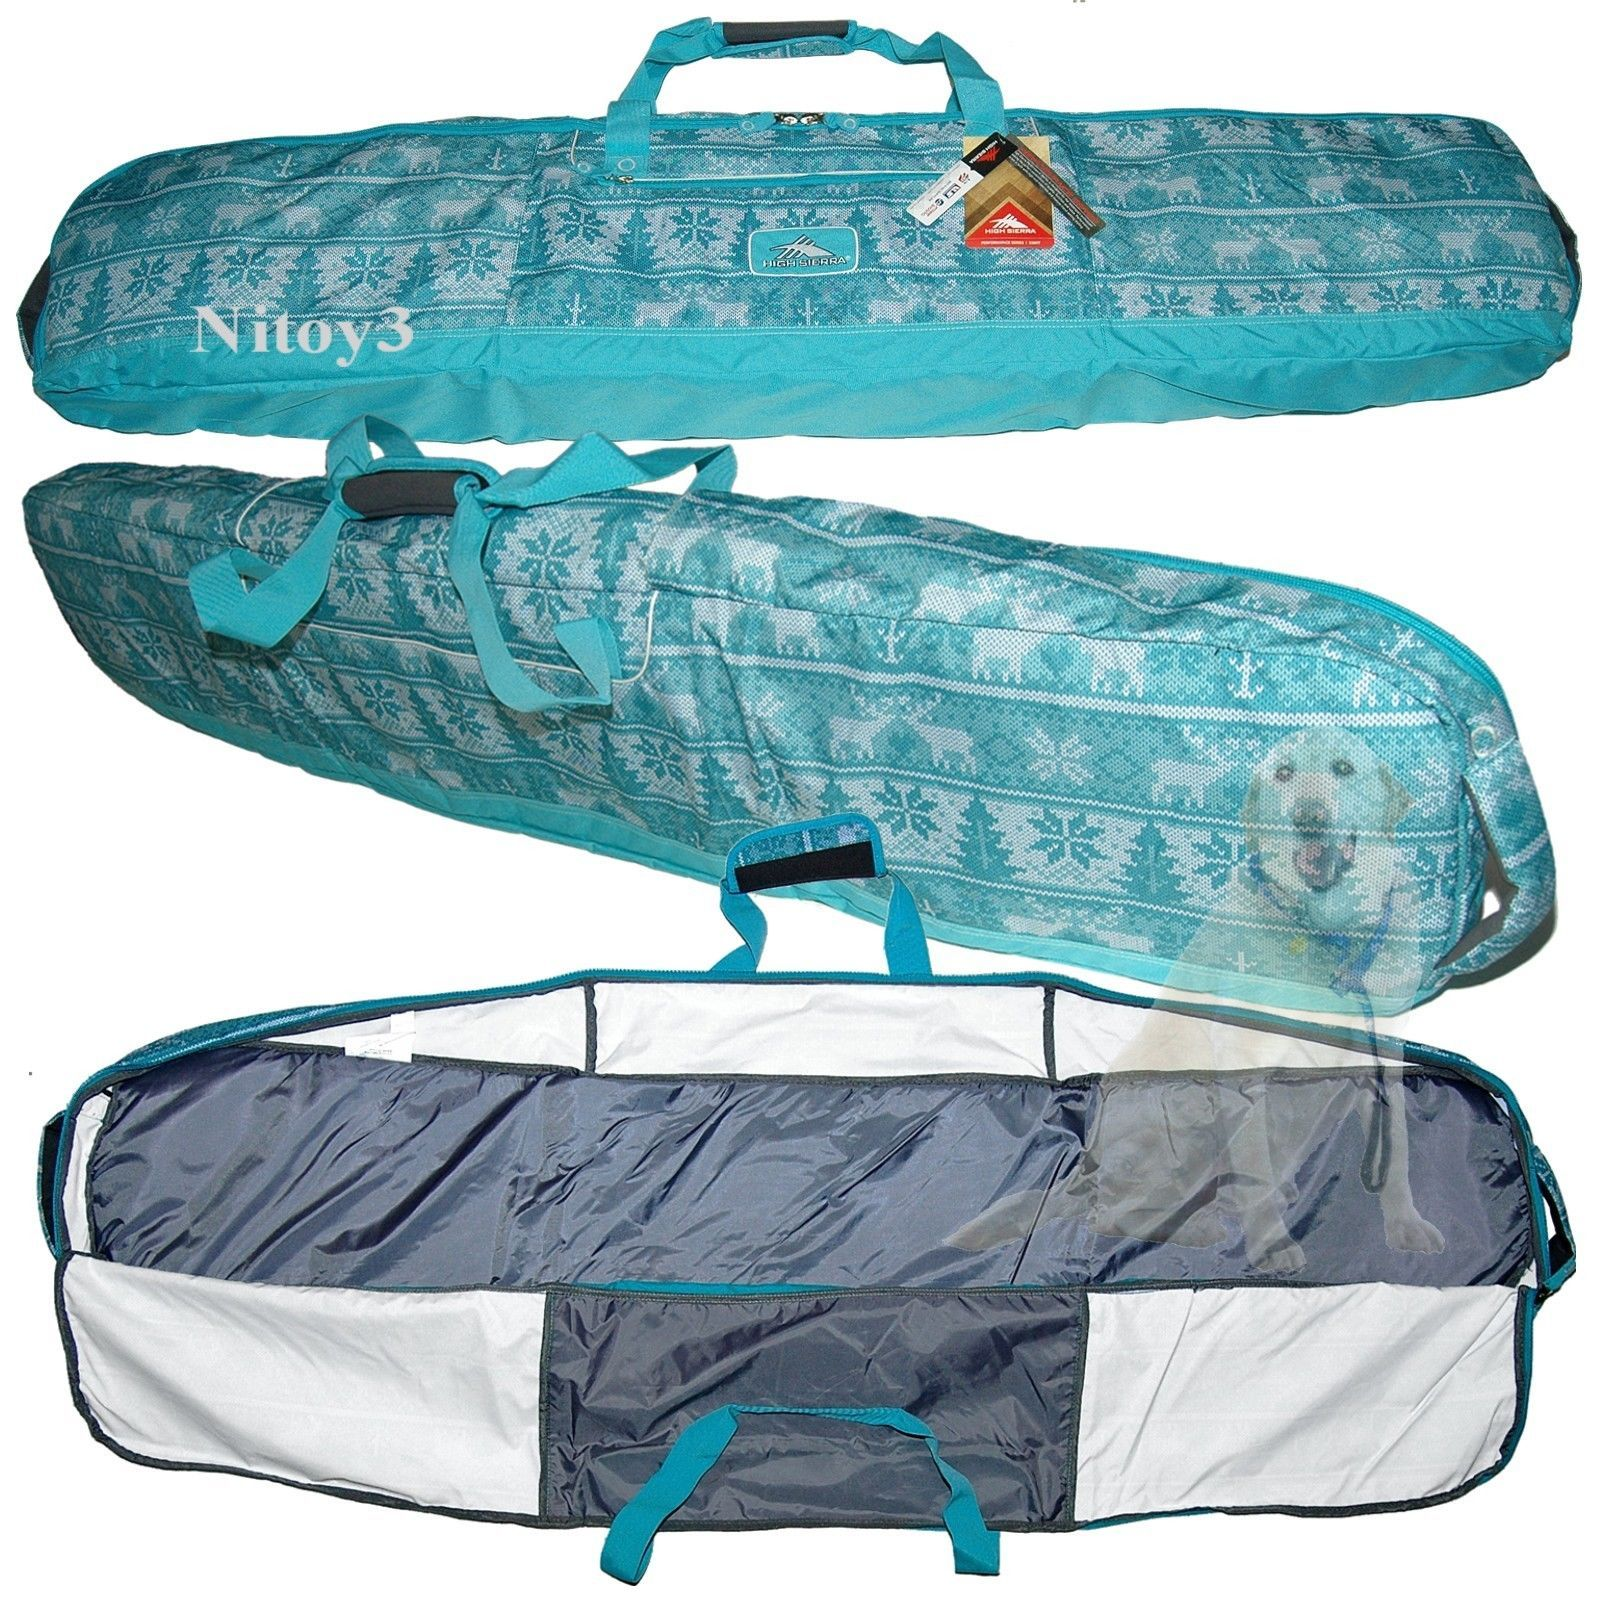 dcd14785d5 Other Snowboarding 159155  High Sierra Deluxe Padded Snowboard Bag Hand Or  Shoulder Carry-170Cm